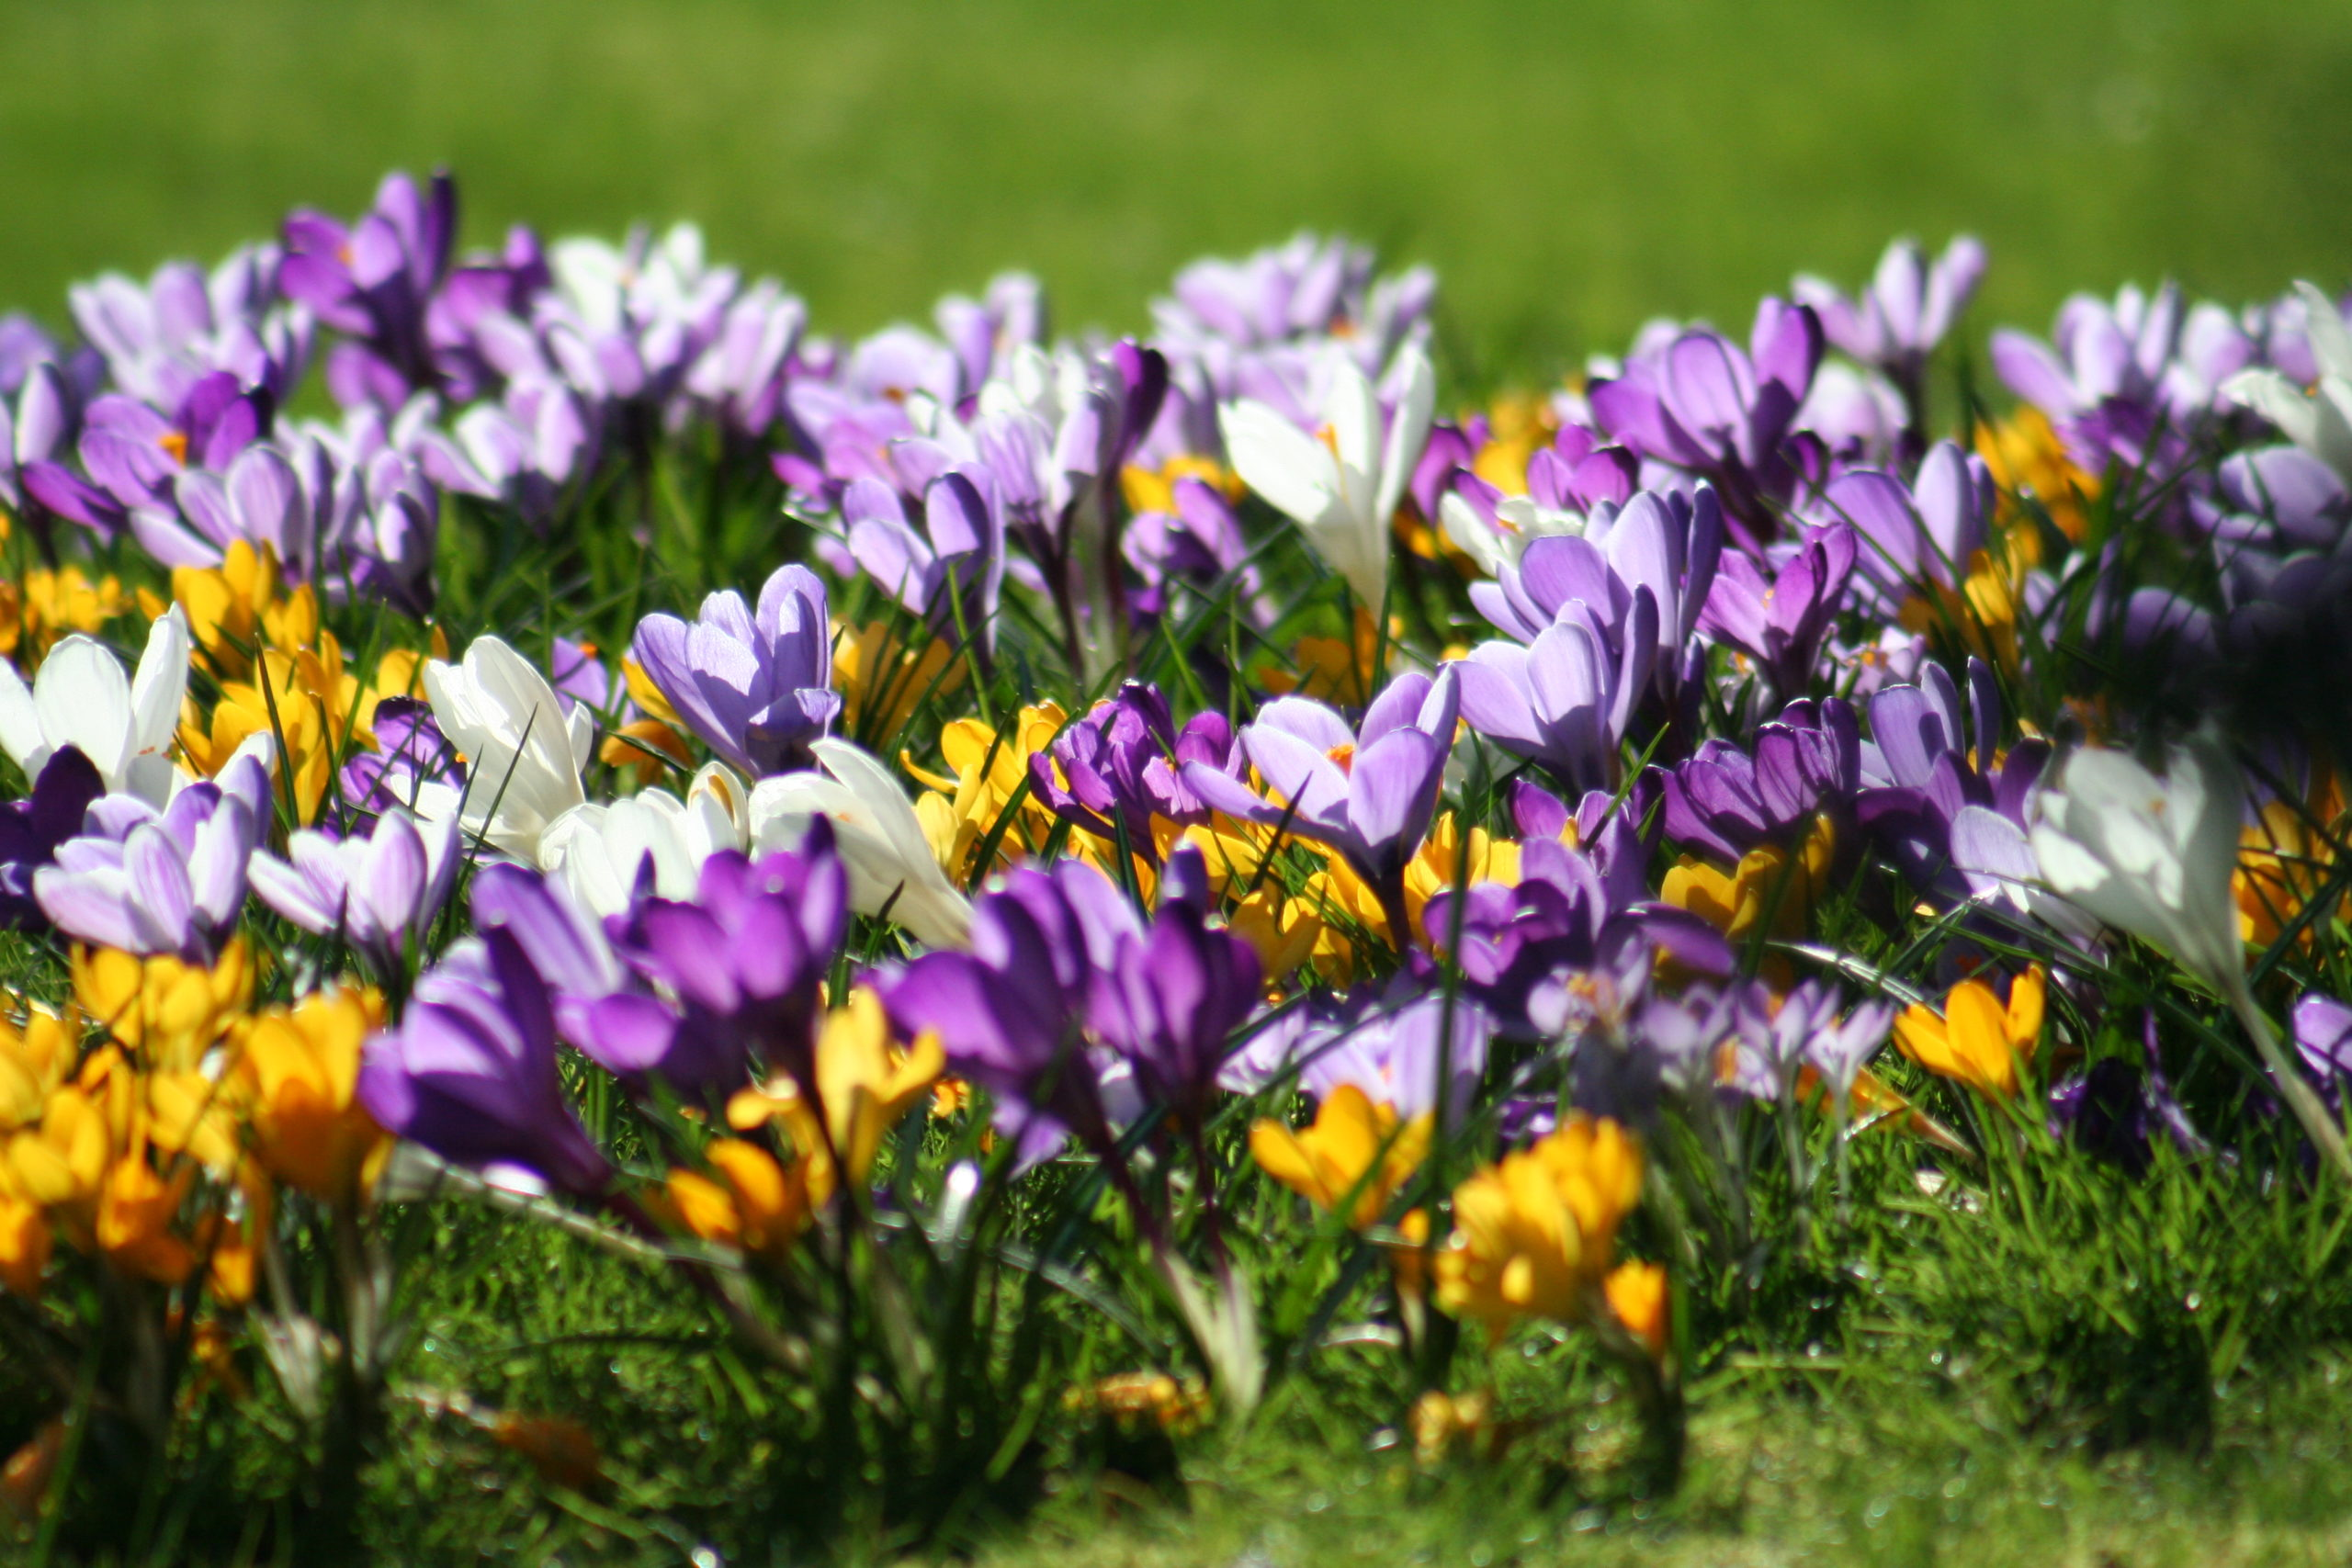 Crocuses and signs of spring